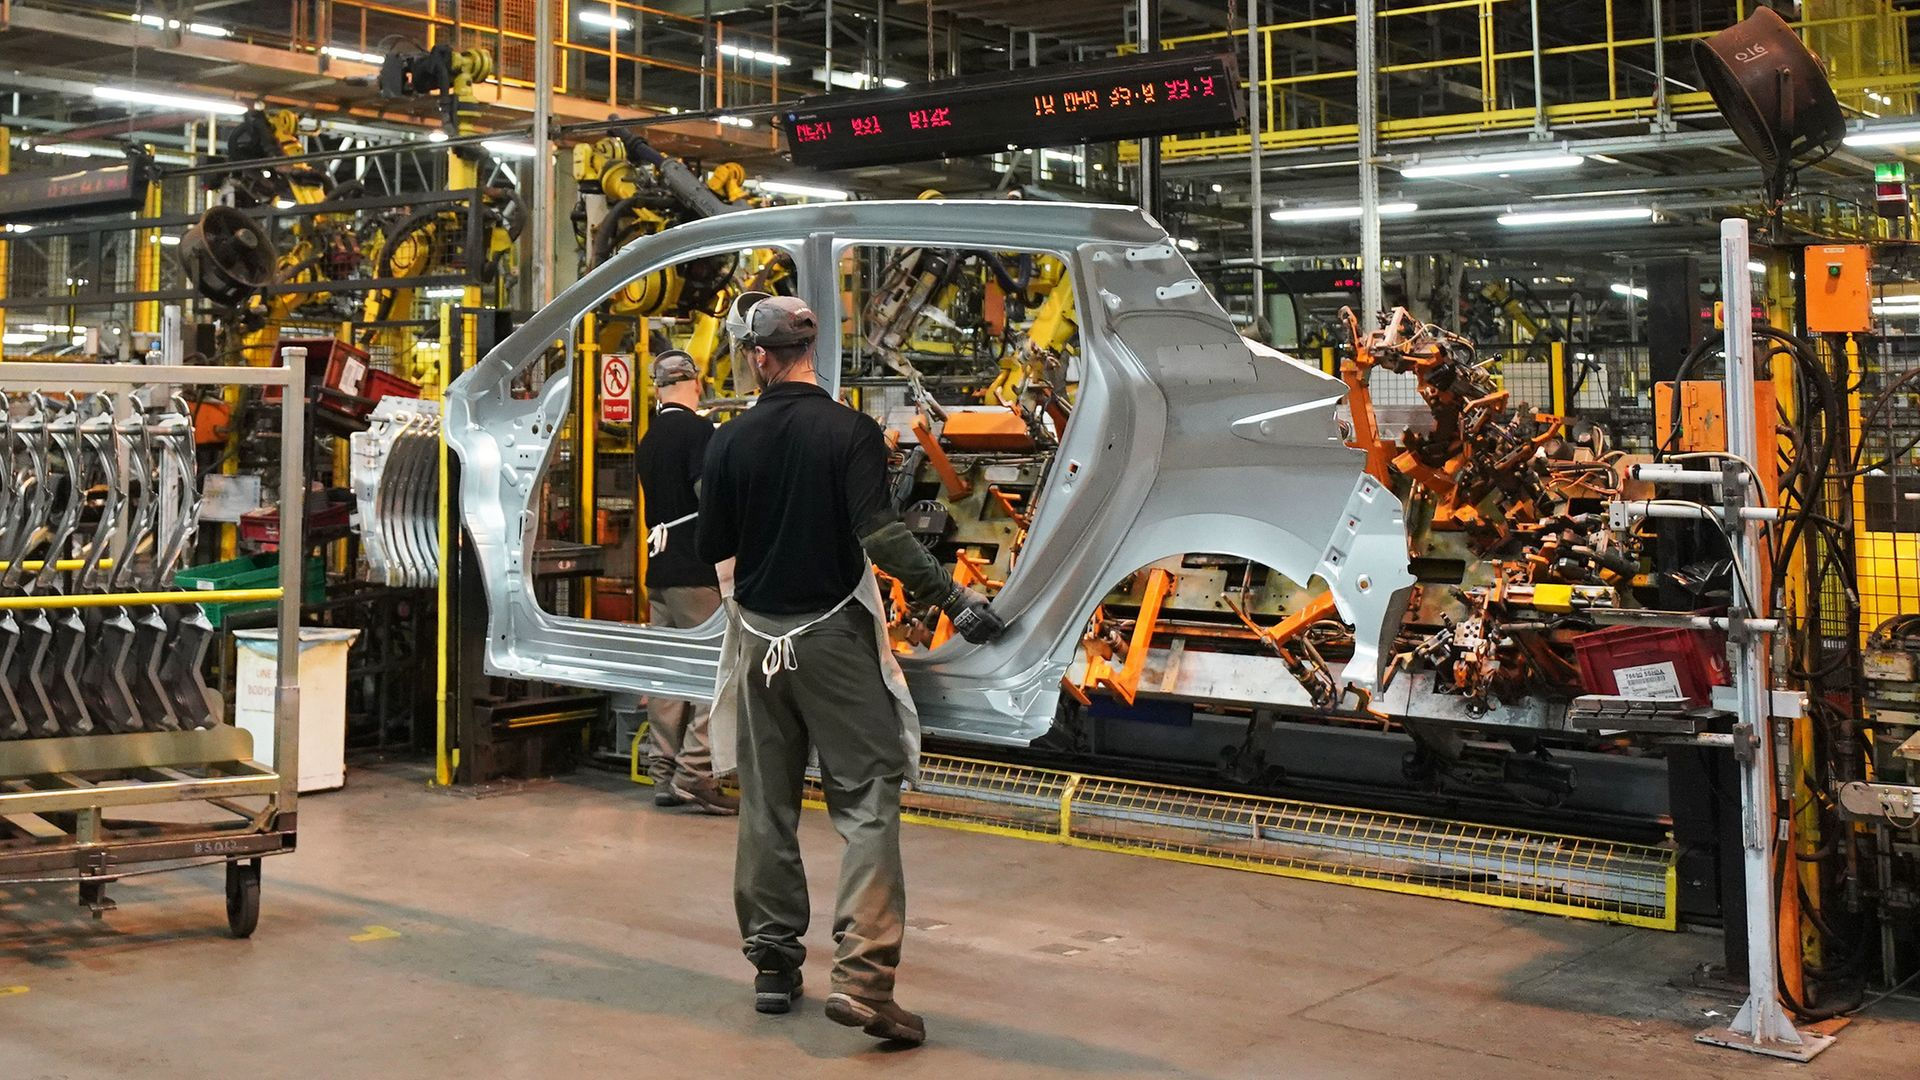 Worker on the production line at Nissan's factory in Sunderland. - Credit: PA